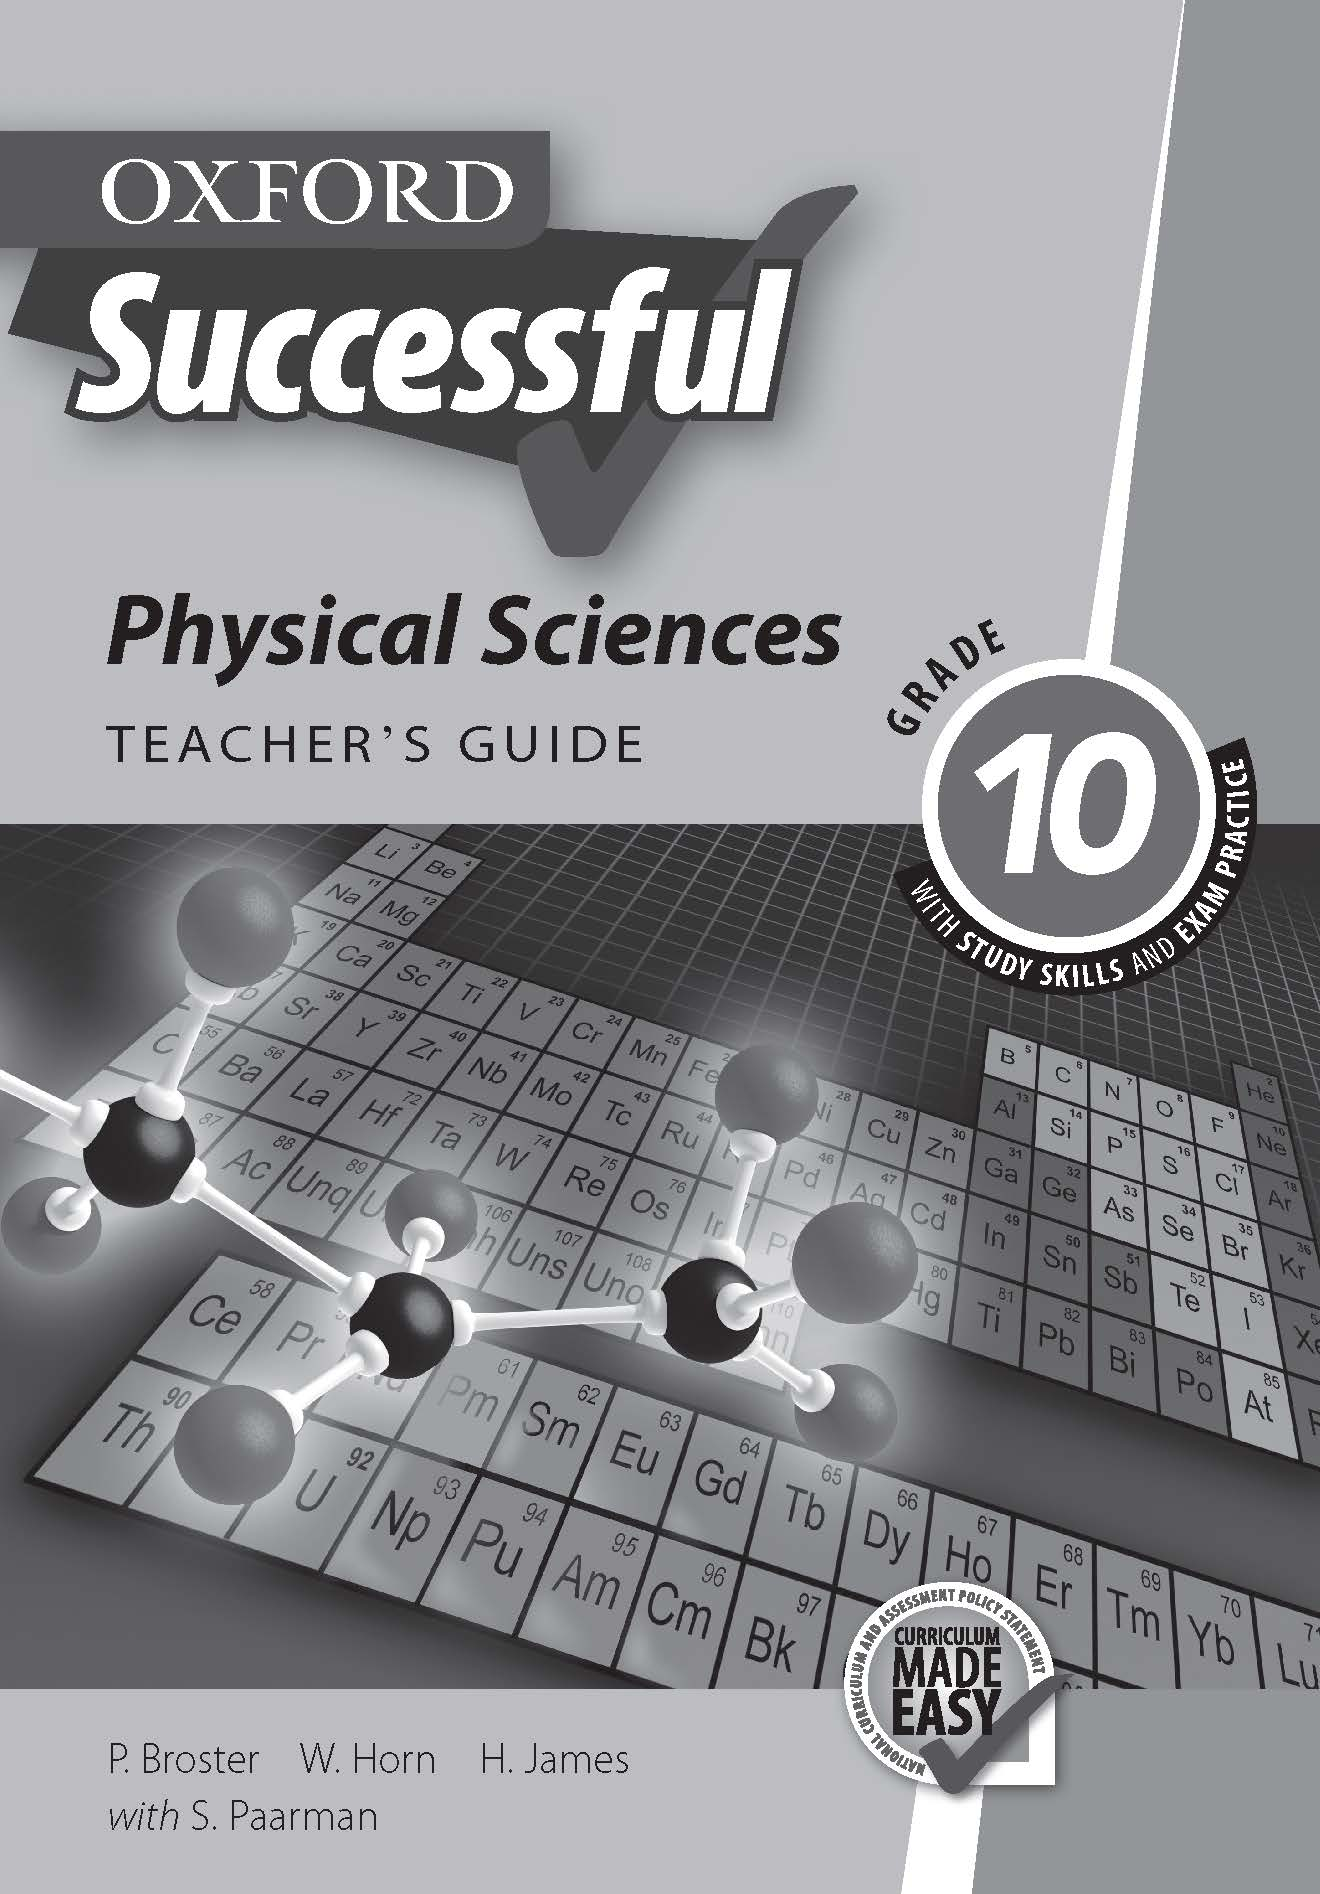 Oxford Successful Physical Sciences Grade 10 Teacher's Guide